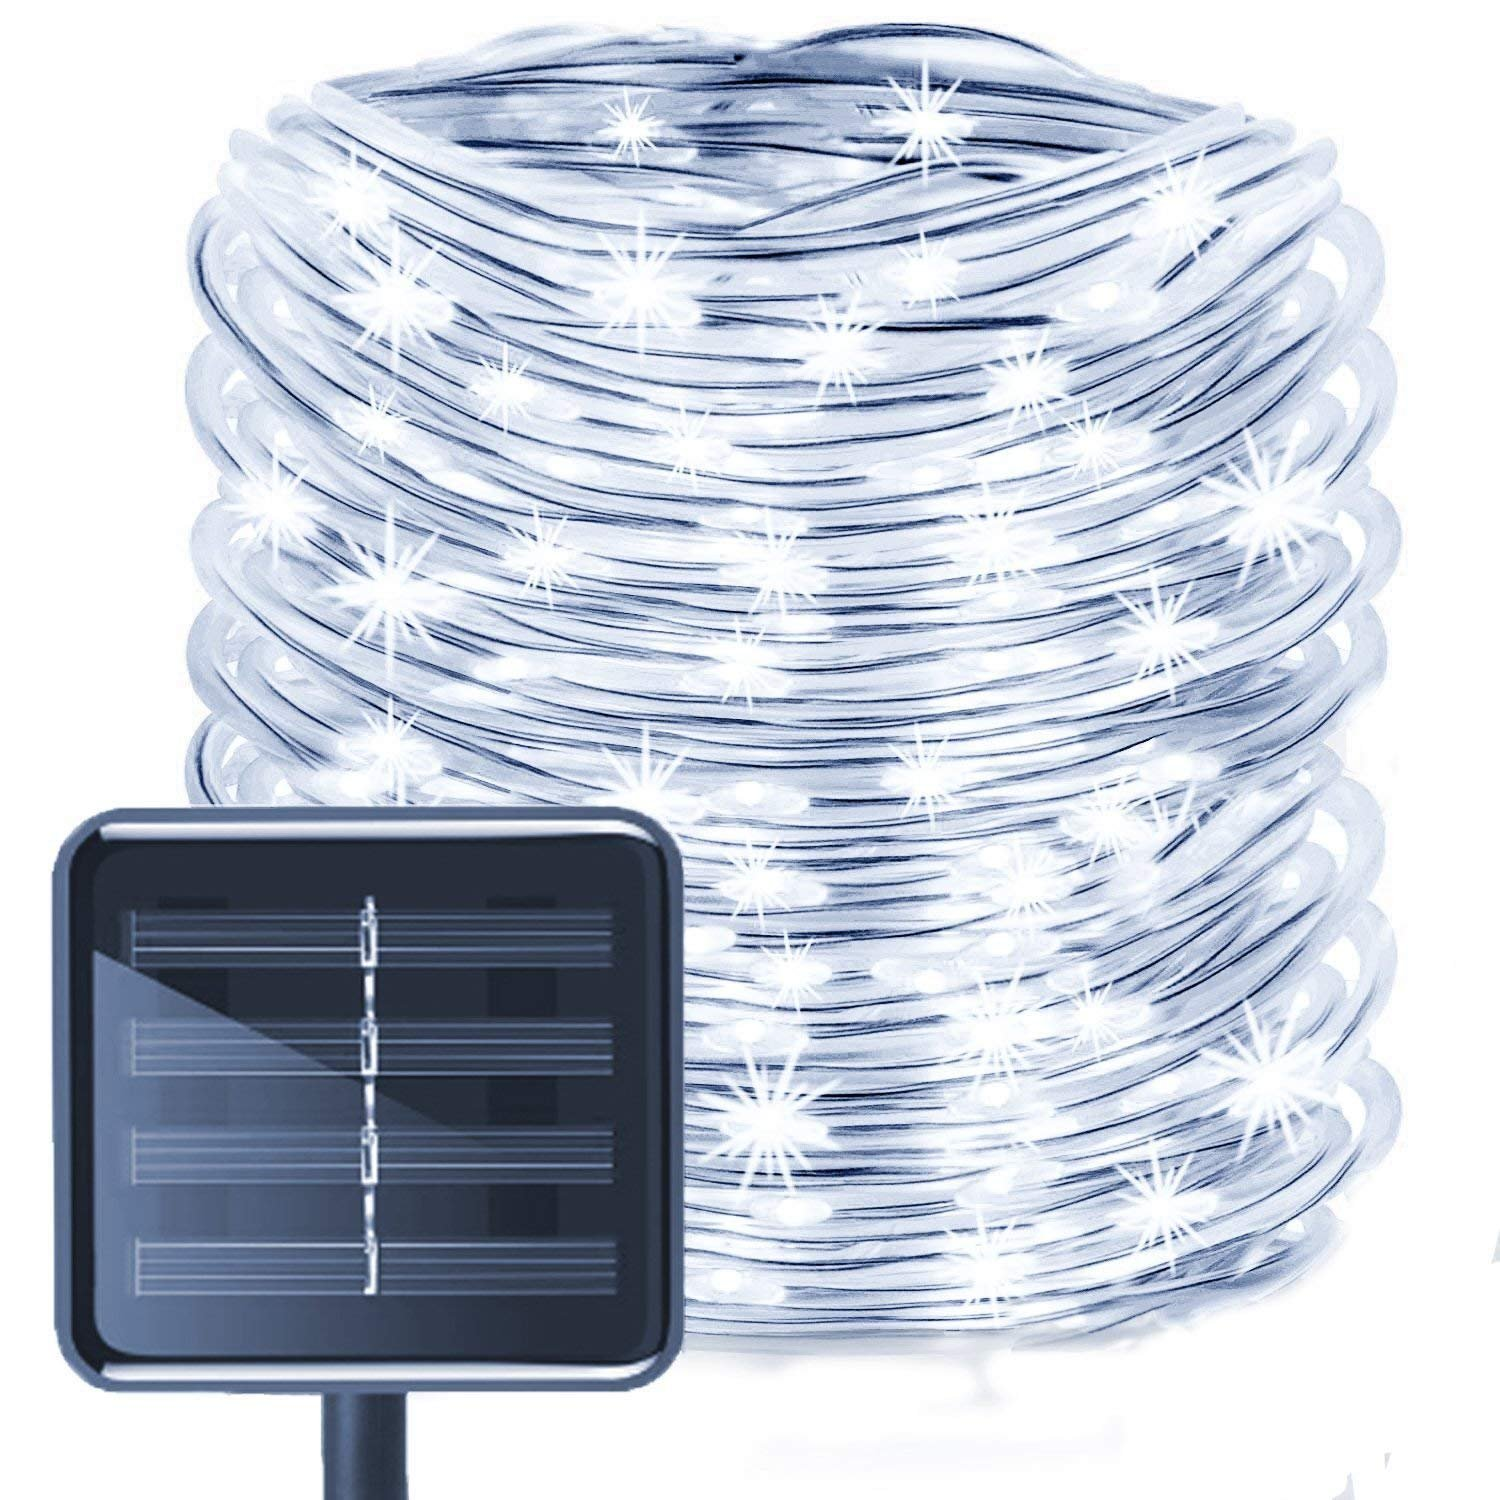 WONFAST Solar Rope Lights Outdoor,WONAFST 39ft 100LED LED Rope Lighting Waterproof Copper Wire Rope String Light for Christmas Home Garden Patio Parties Decor (White)